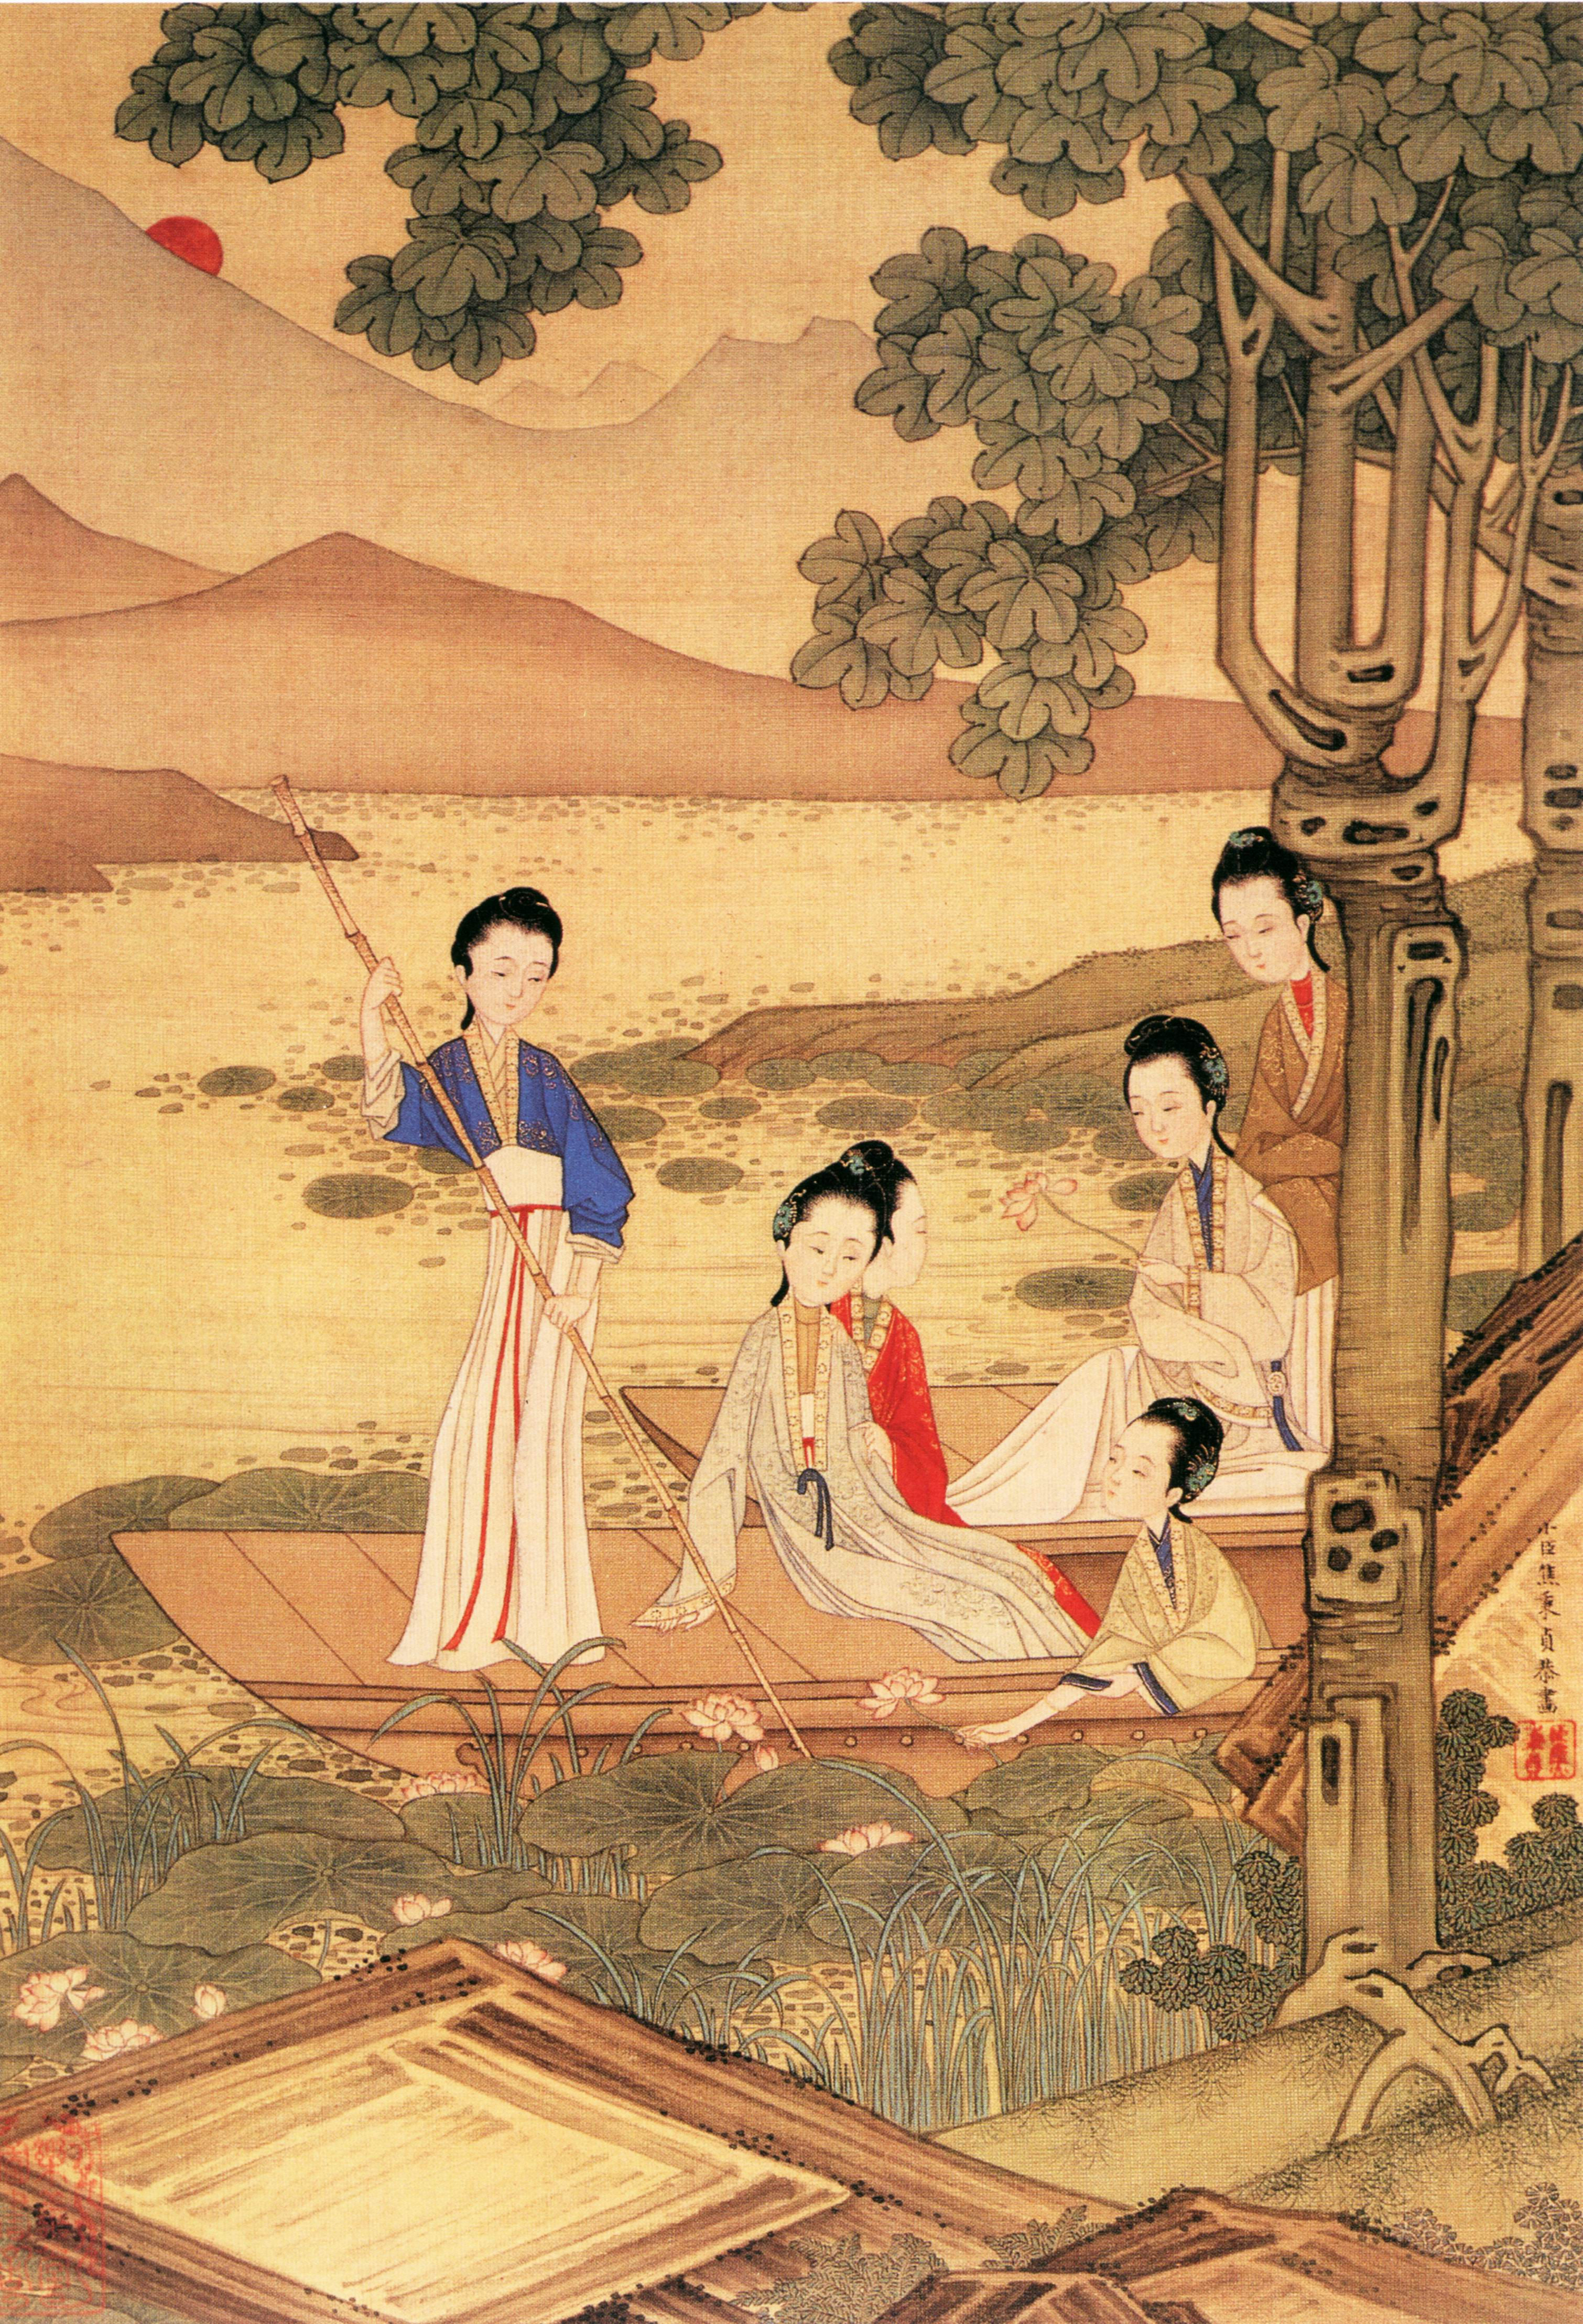 an appreciation and understanding of the chinese art during the mind dynasty